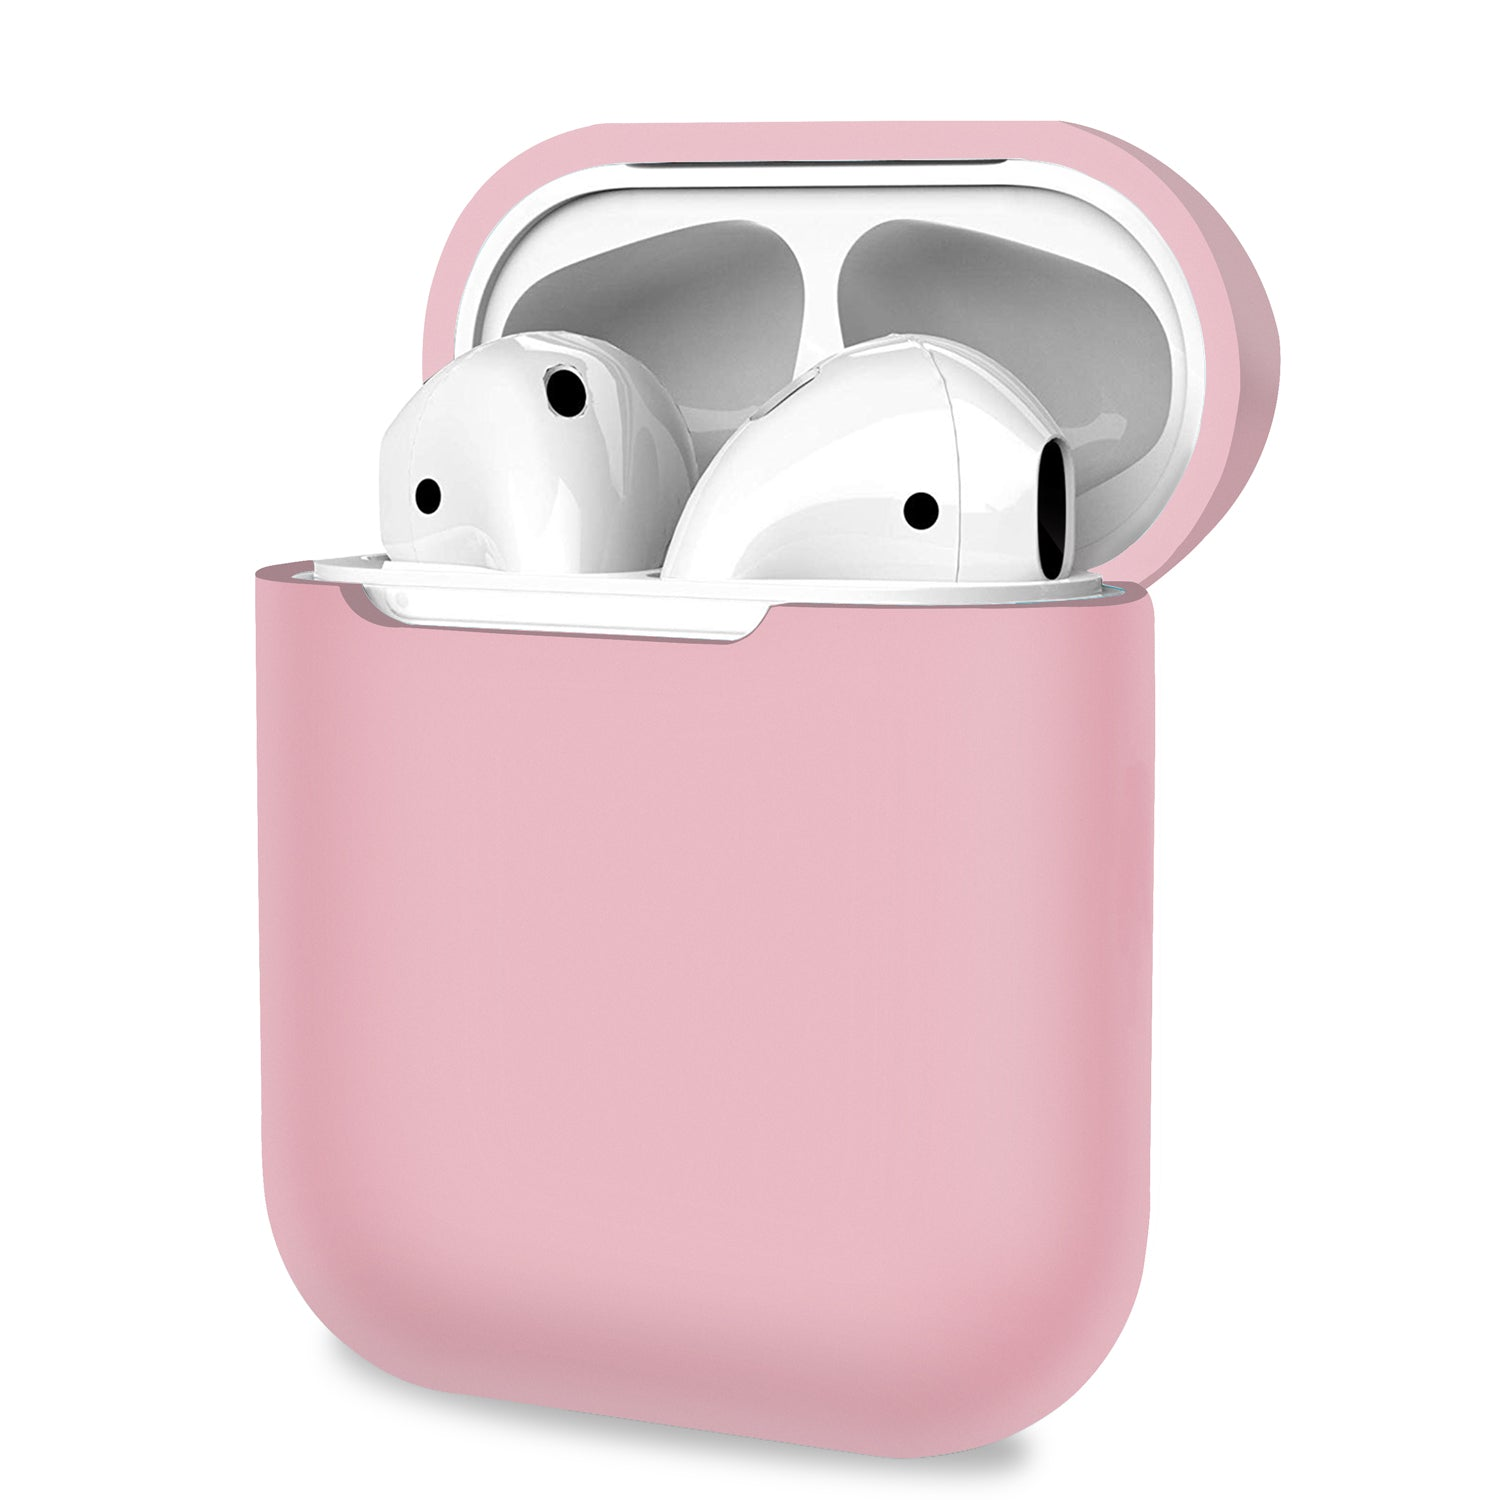 AirPods 1 2 Case Cover Skin Earphone Charge Silicone Case Light Pink, Audio Accessories by TradeNRG